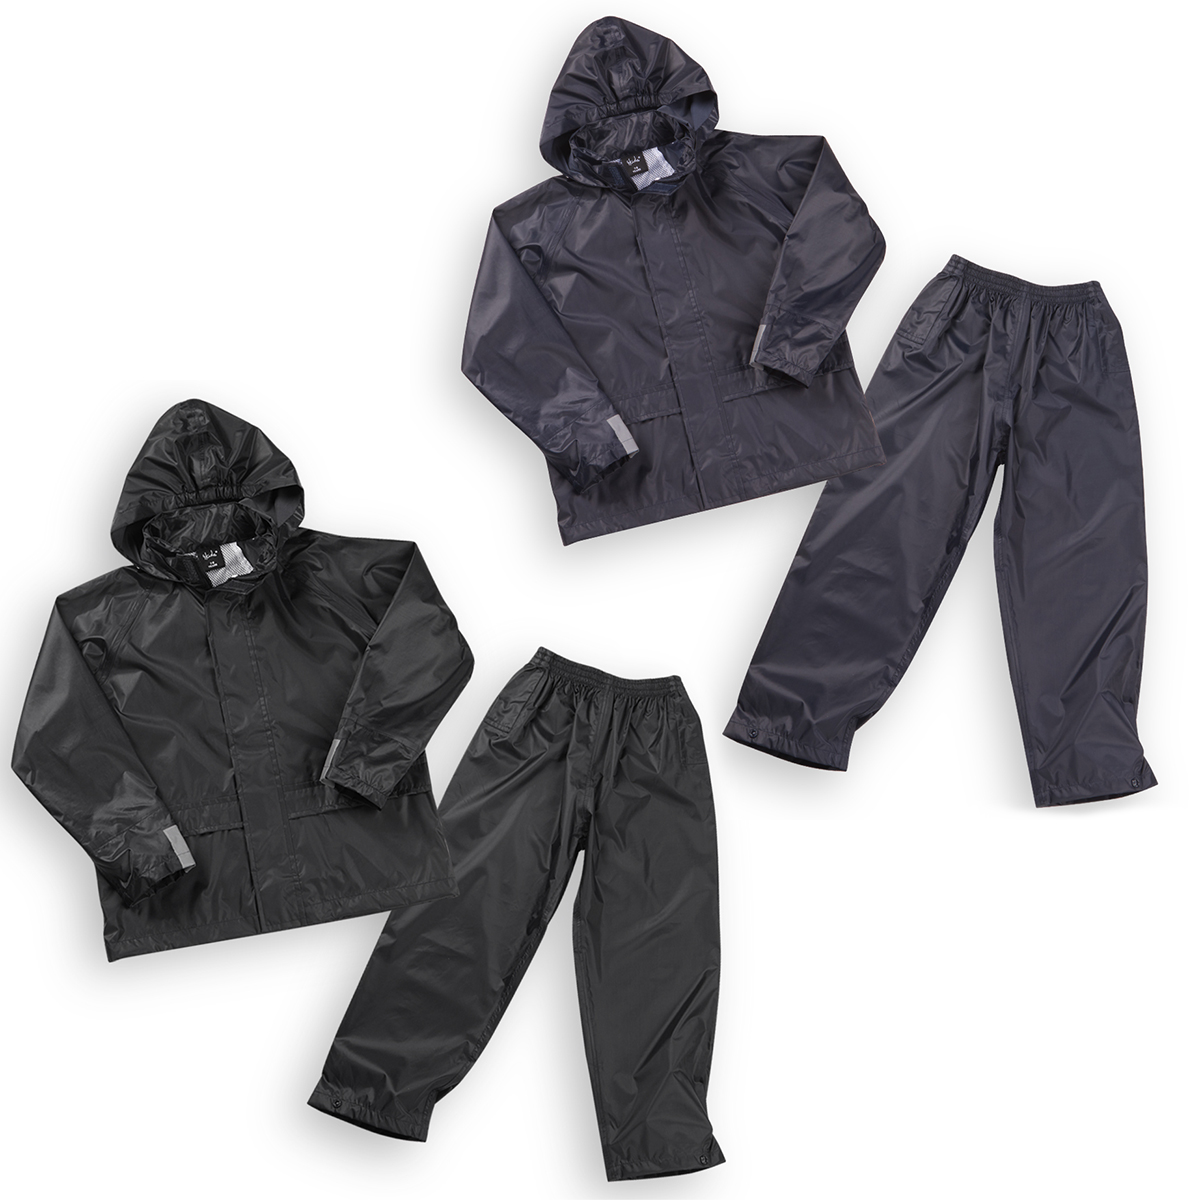 e5836a15e5b3 Boys Kids Waterproof Tracksuit Jacket Coat Trousers Pants Set Outdoor  Camping